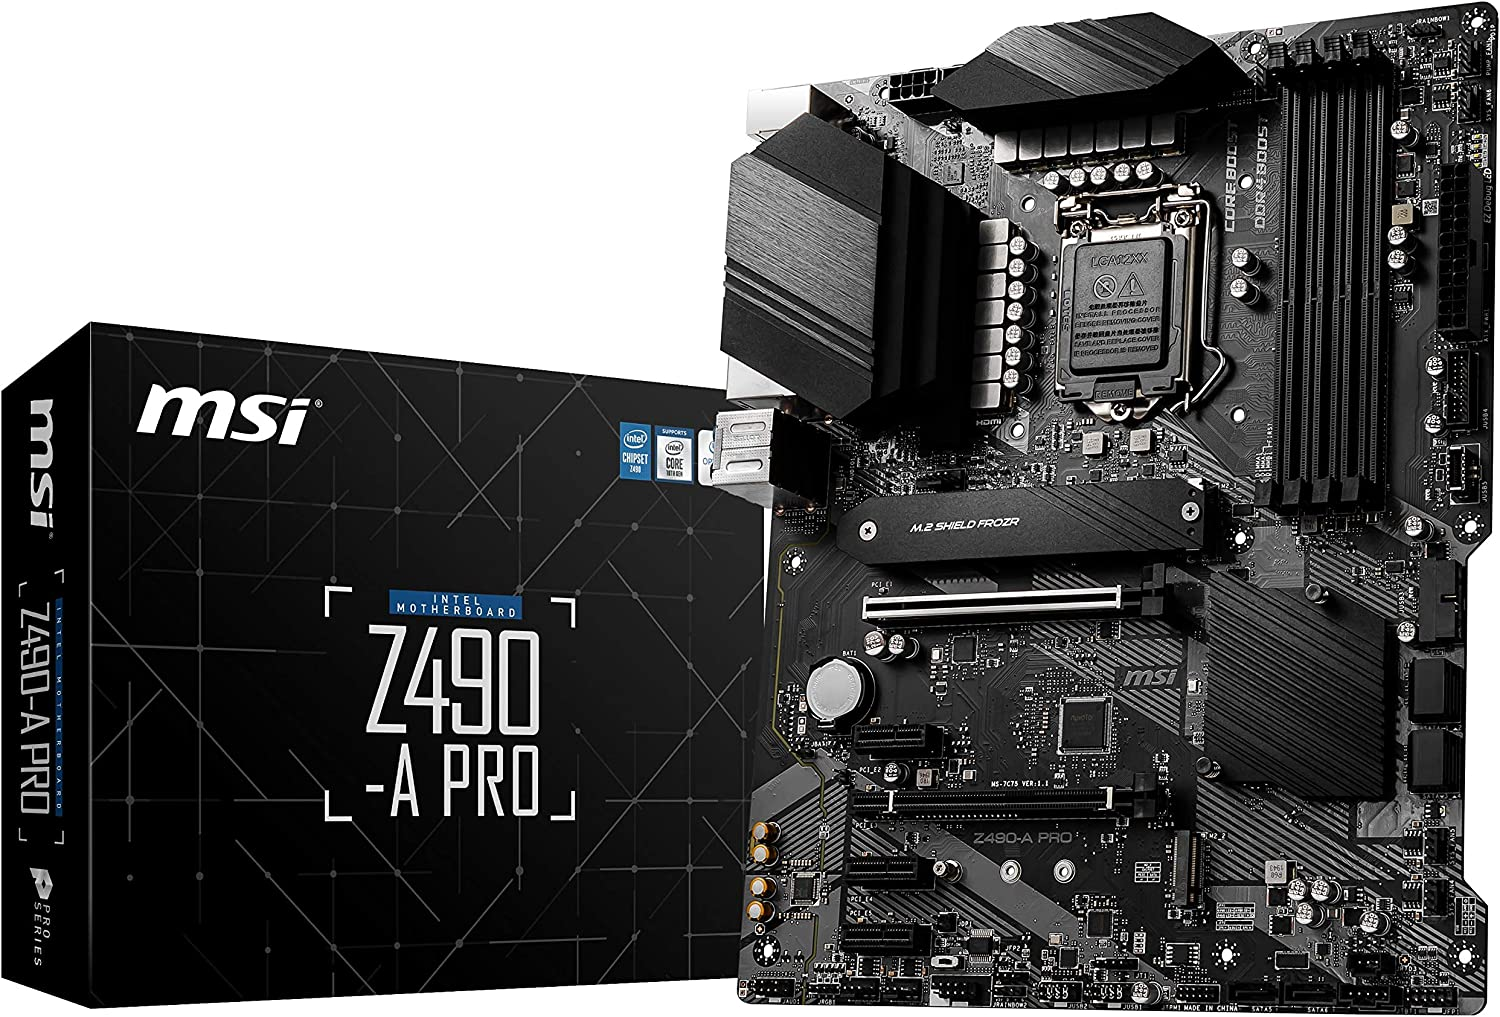 MSI Z490-A PRO ProSeries ATX Motherboard (10th Gen Intel Core, LGA 1200 Socket, DDR4, Dual M.2 Slots, USB 3.2 Gen 2, 2.5G LAN, DP/HDMI)